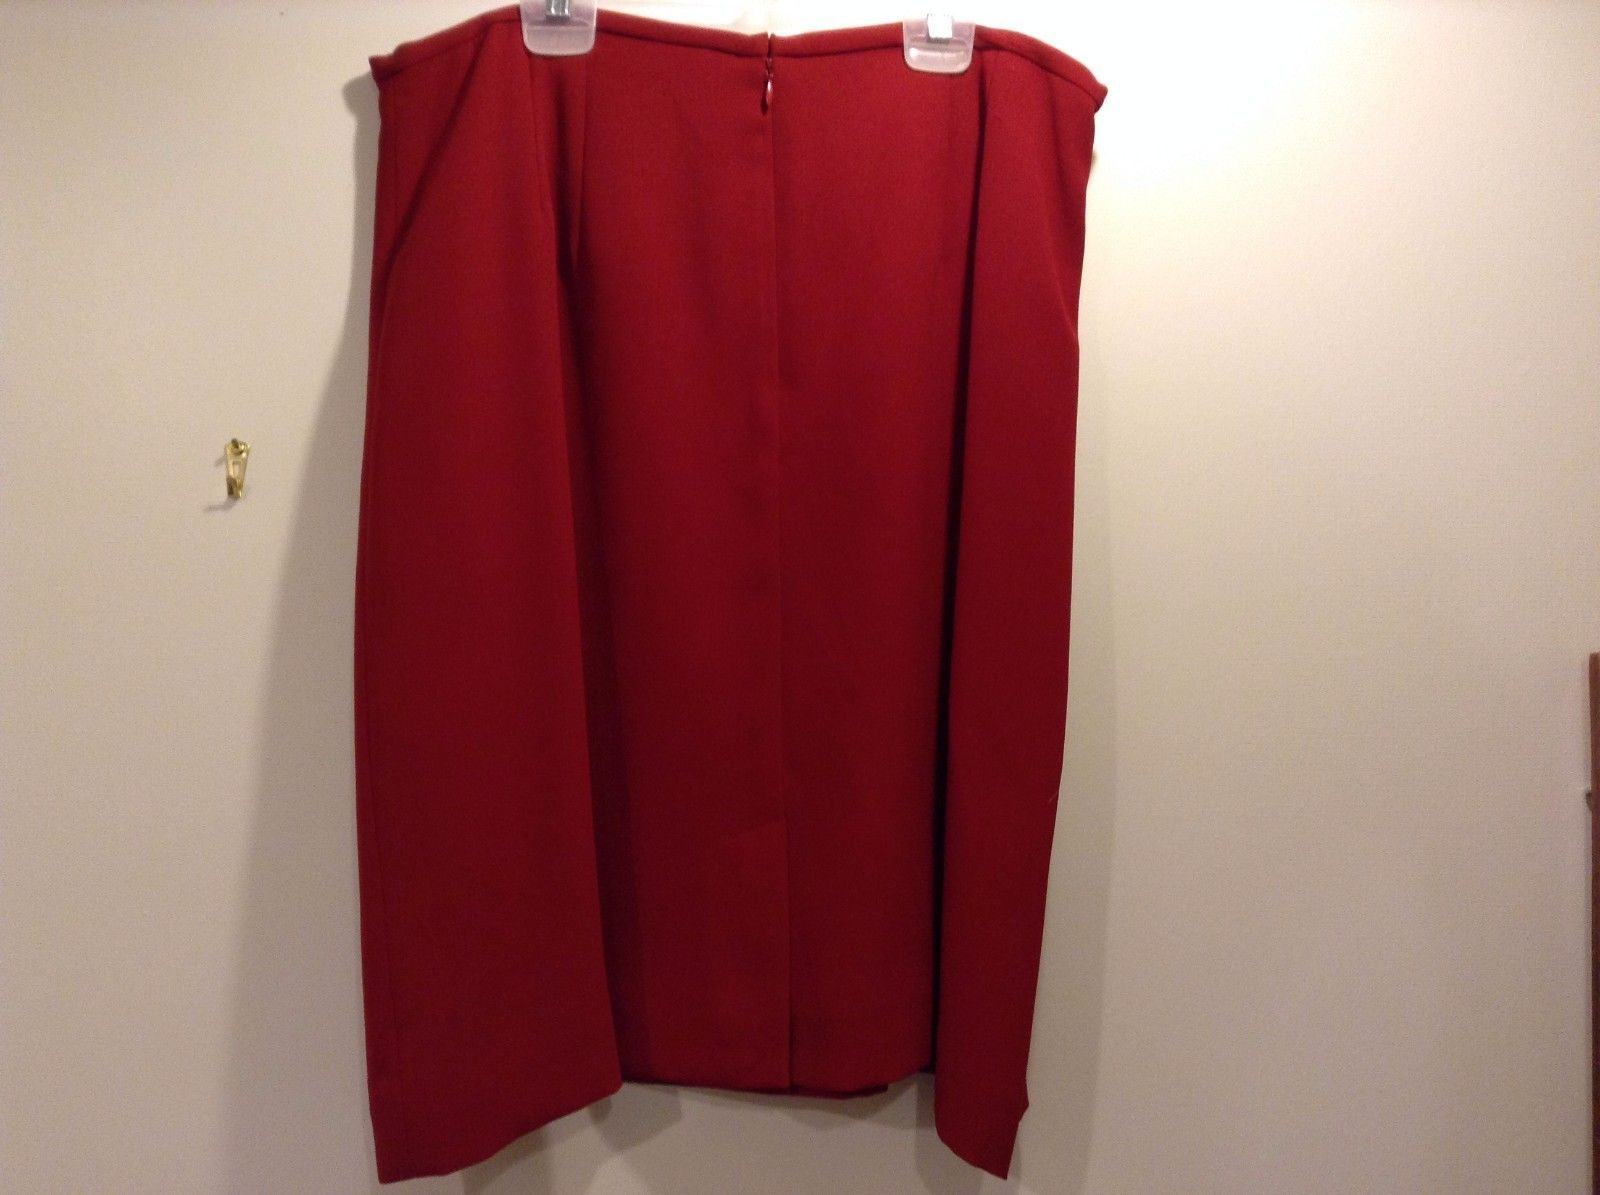 Used Great Condition Amanda Smith 16 100% Polyester Red Zip Skirt